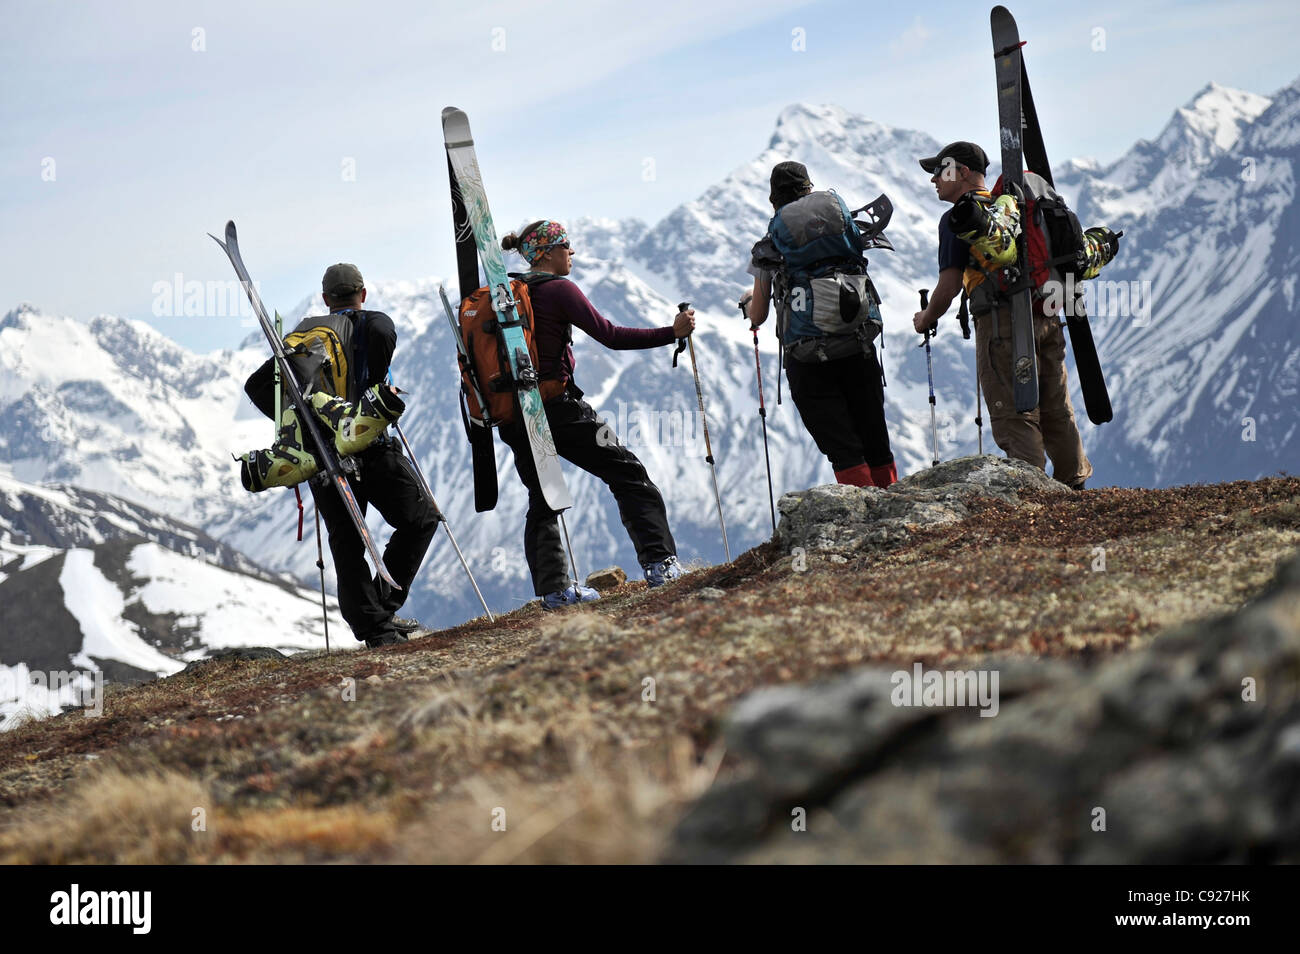 Group of backcountry skiers stand on a ridge of Raina Peak overlooking the Chugach Mountains, Alaska - Stock Image